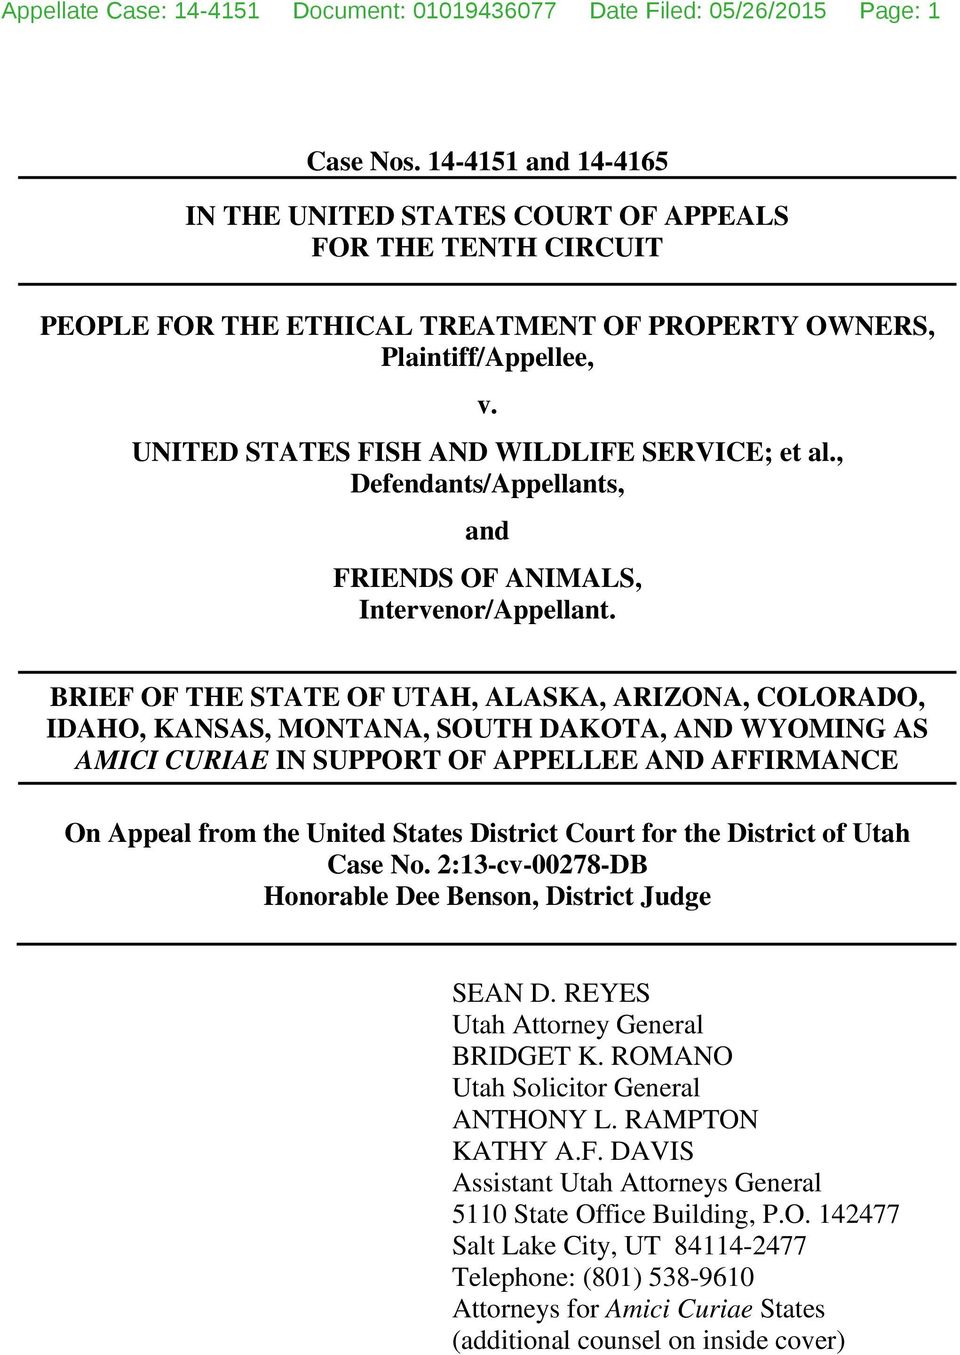 UNITED STATES FISH AND WILDLIFE SERVICE; et al., Defendants/Appellants, and FRIENDS OF ANIMALS, Intervenor/Appellant.